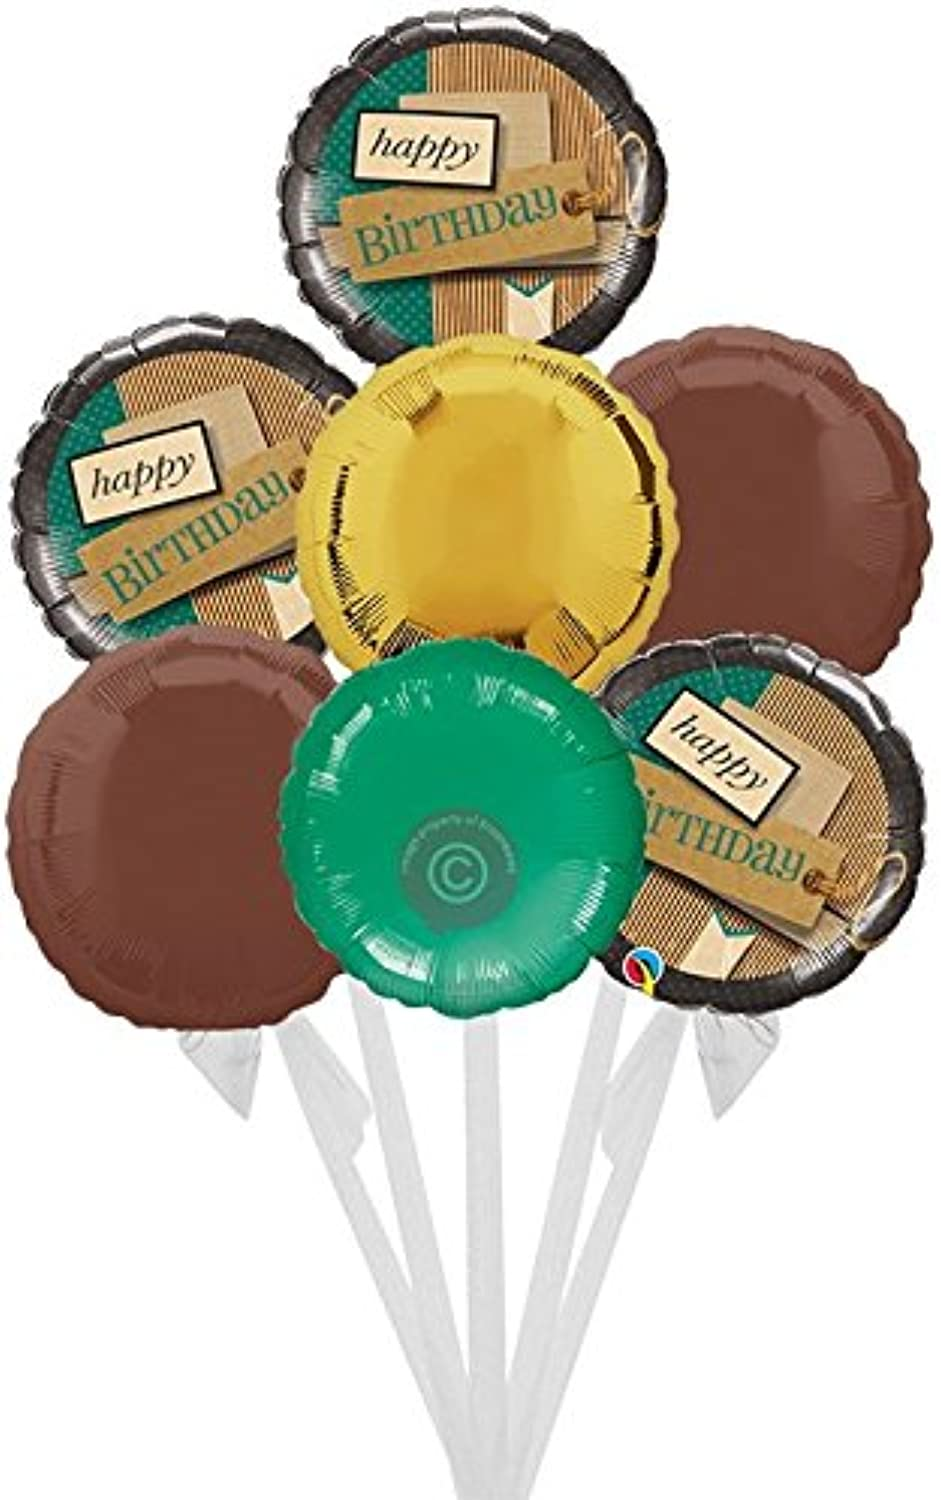 Happy Birthday Paper Patterns  Inflated Birthday Helium Balloon Delivered in a Box  Bigger Bouquet  7 Balloons  Bloonaway